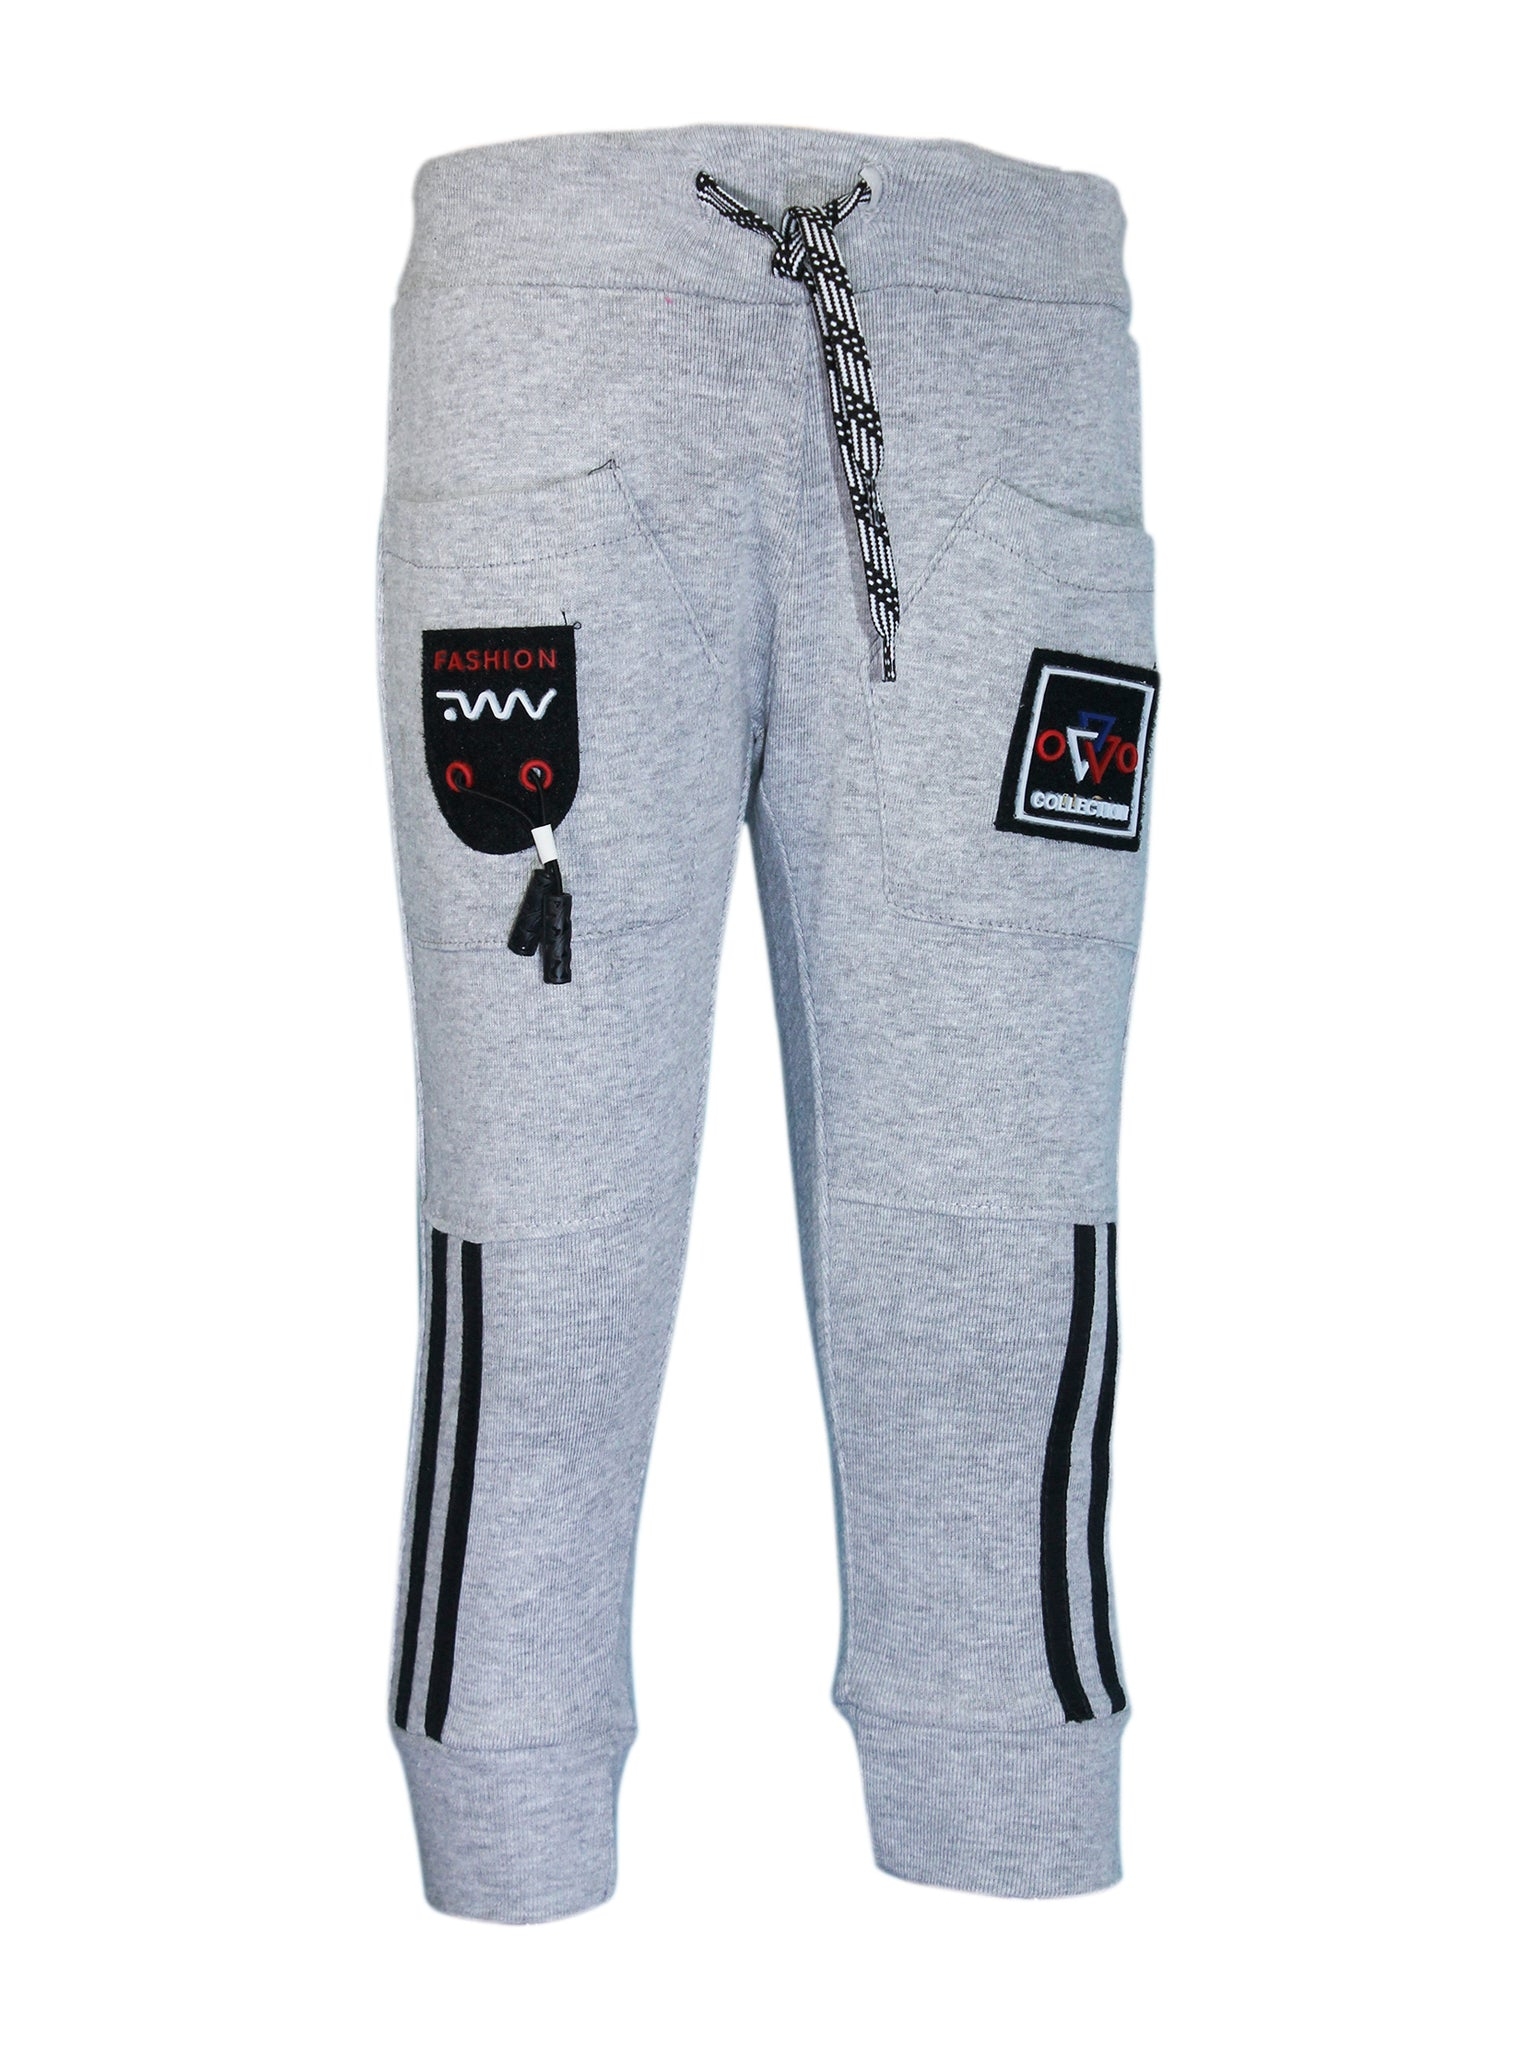 MK 2 Yrs - 6 Yrs Boys Trouser Fashion Grey